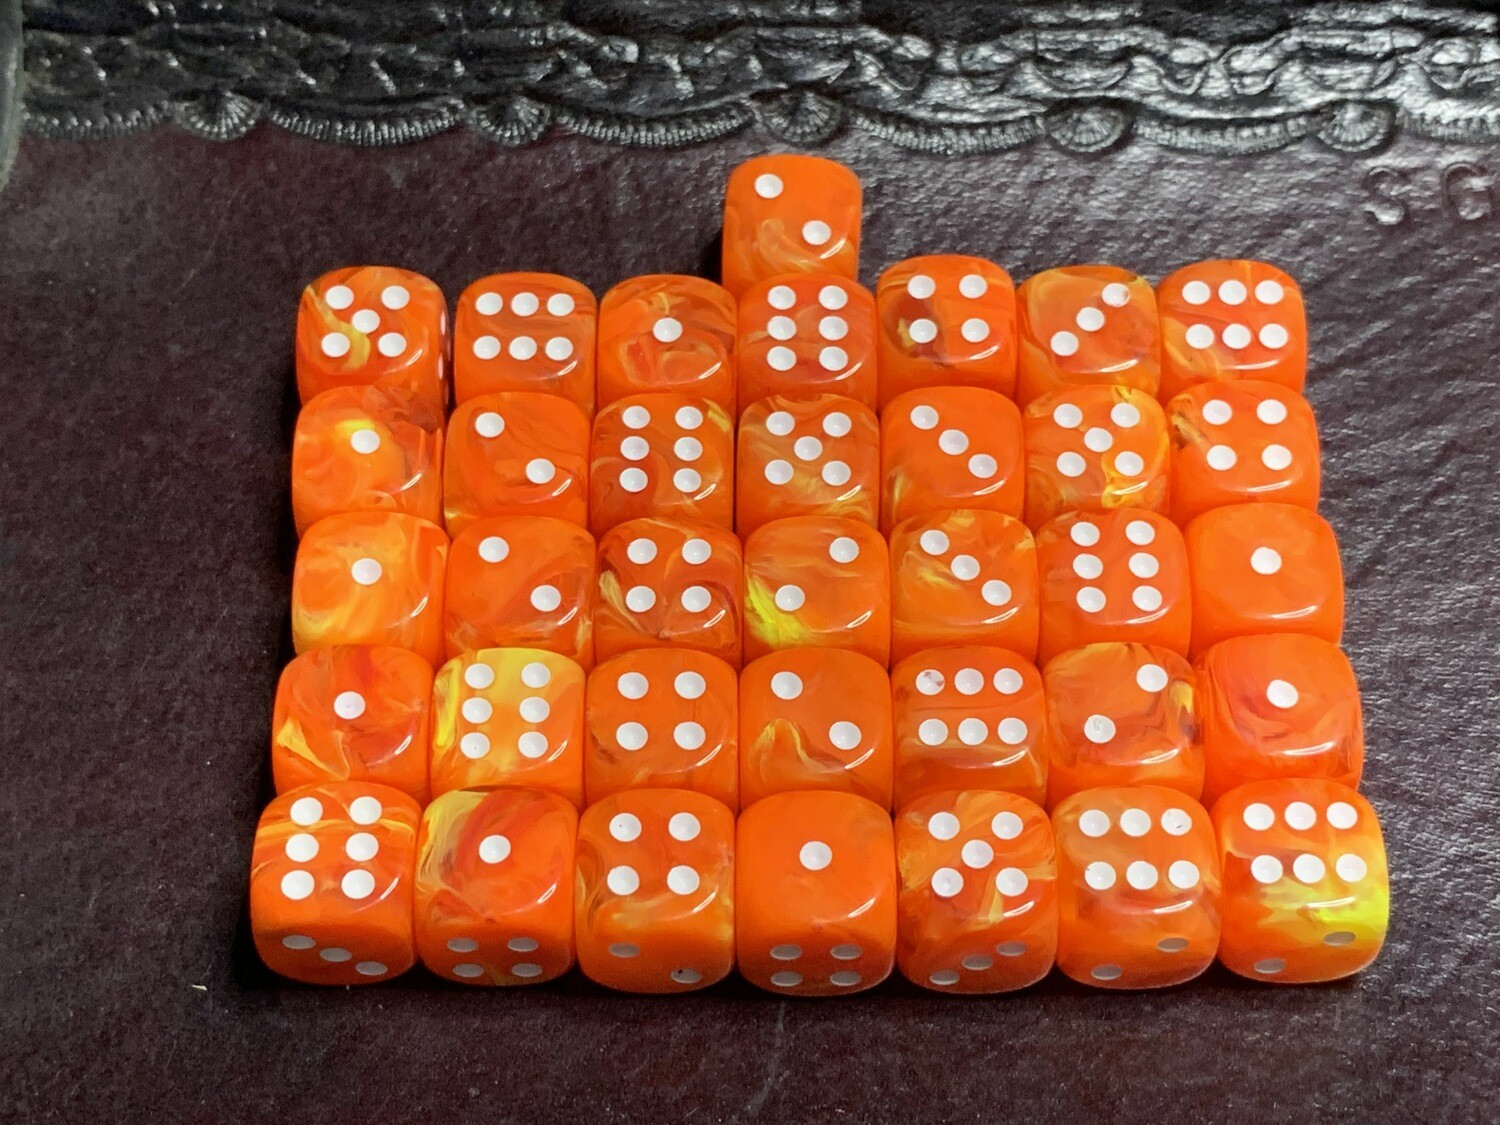 12mm Set of 36 D6 Dice - Chessex Vortex Solar with White Tabletop RPG Gaming